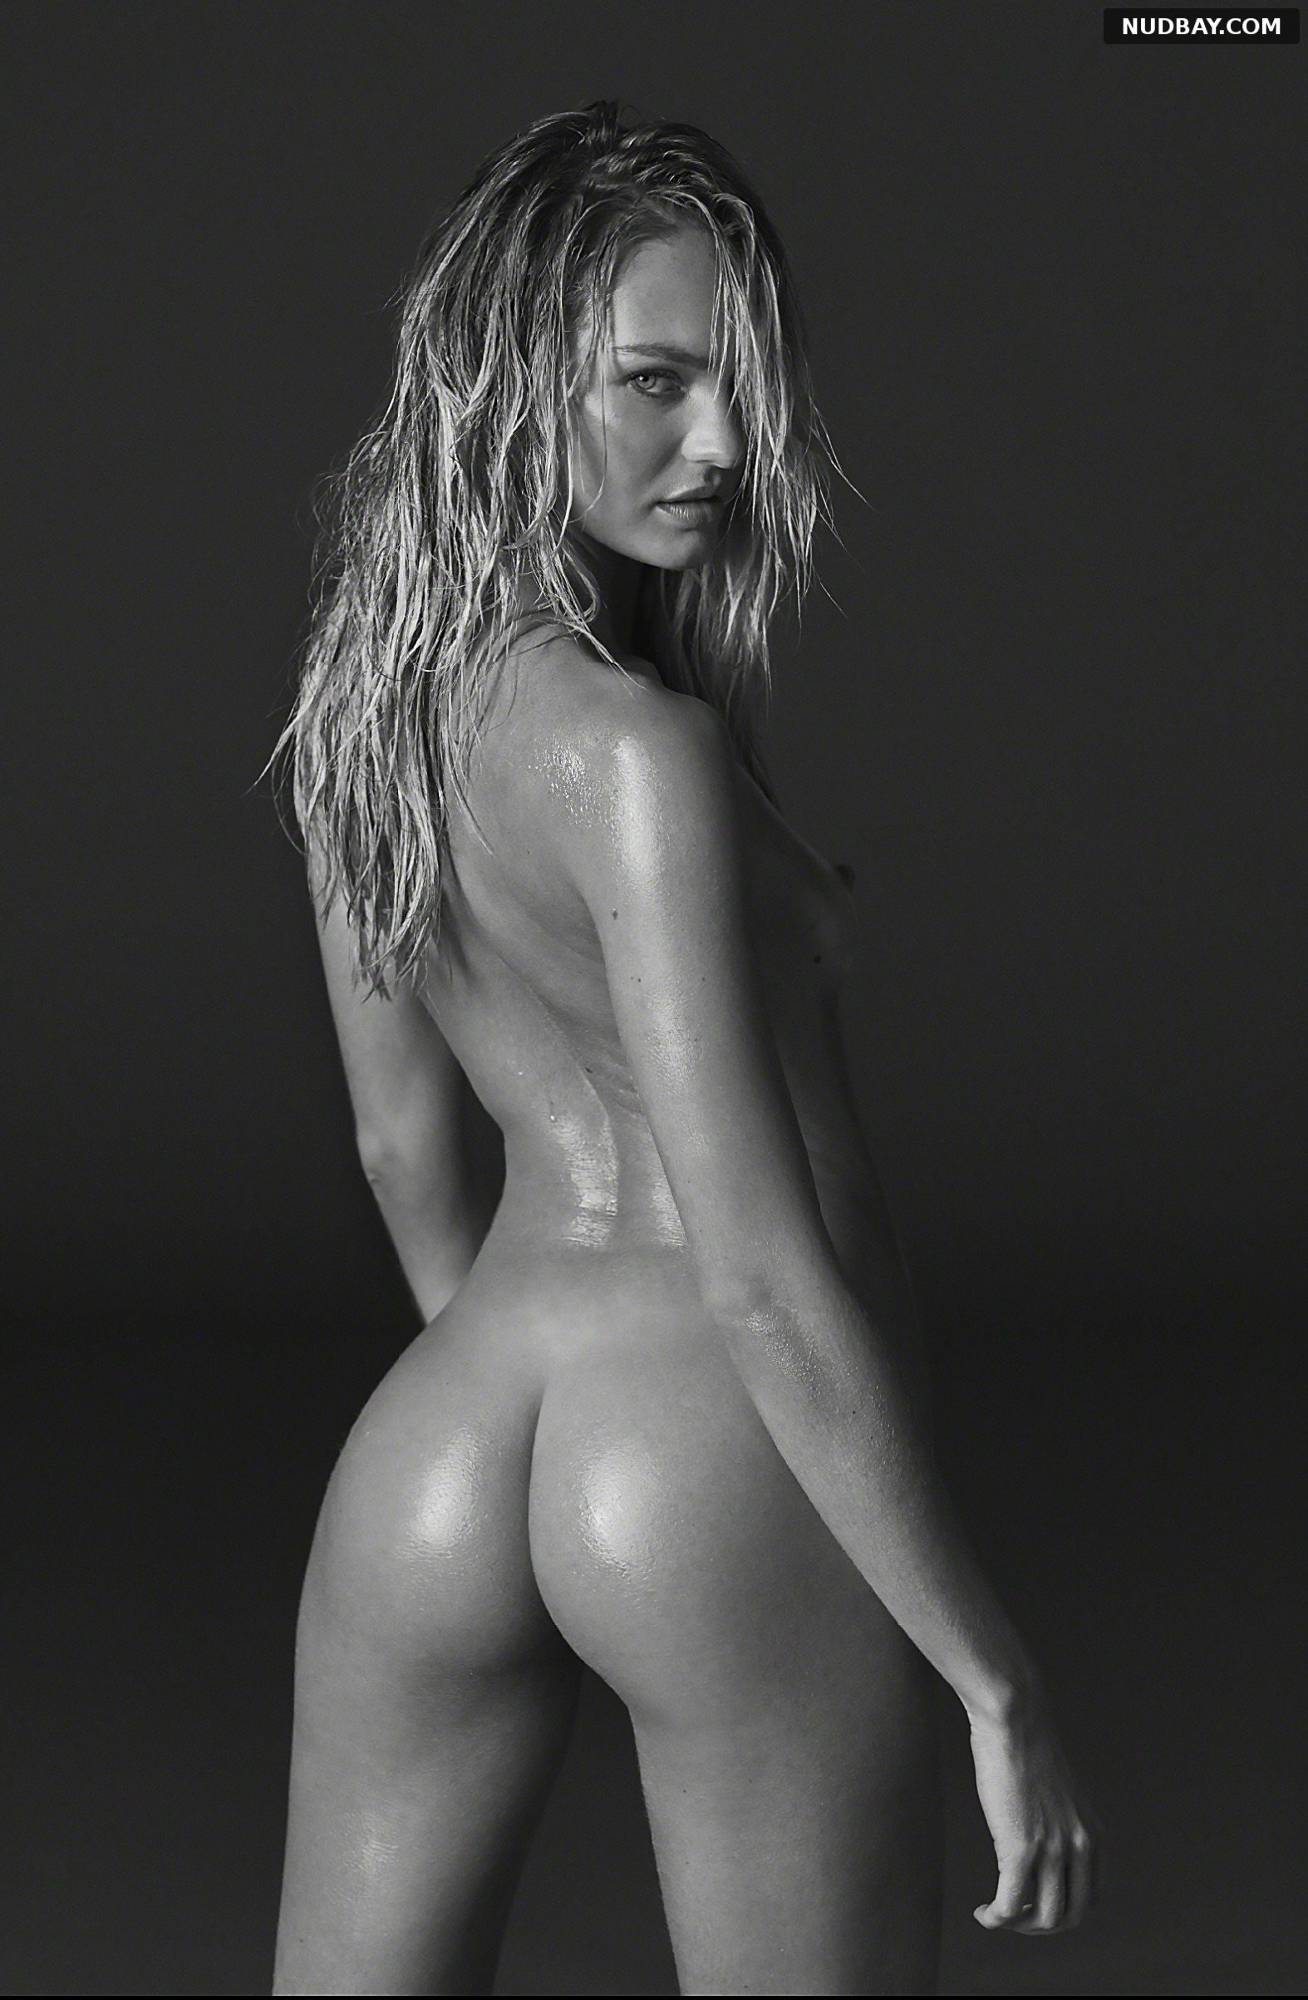 Candice Swanepoel nude ass